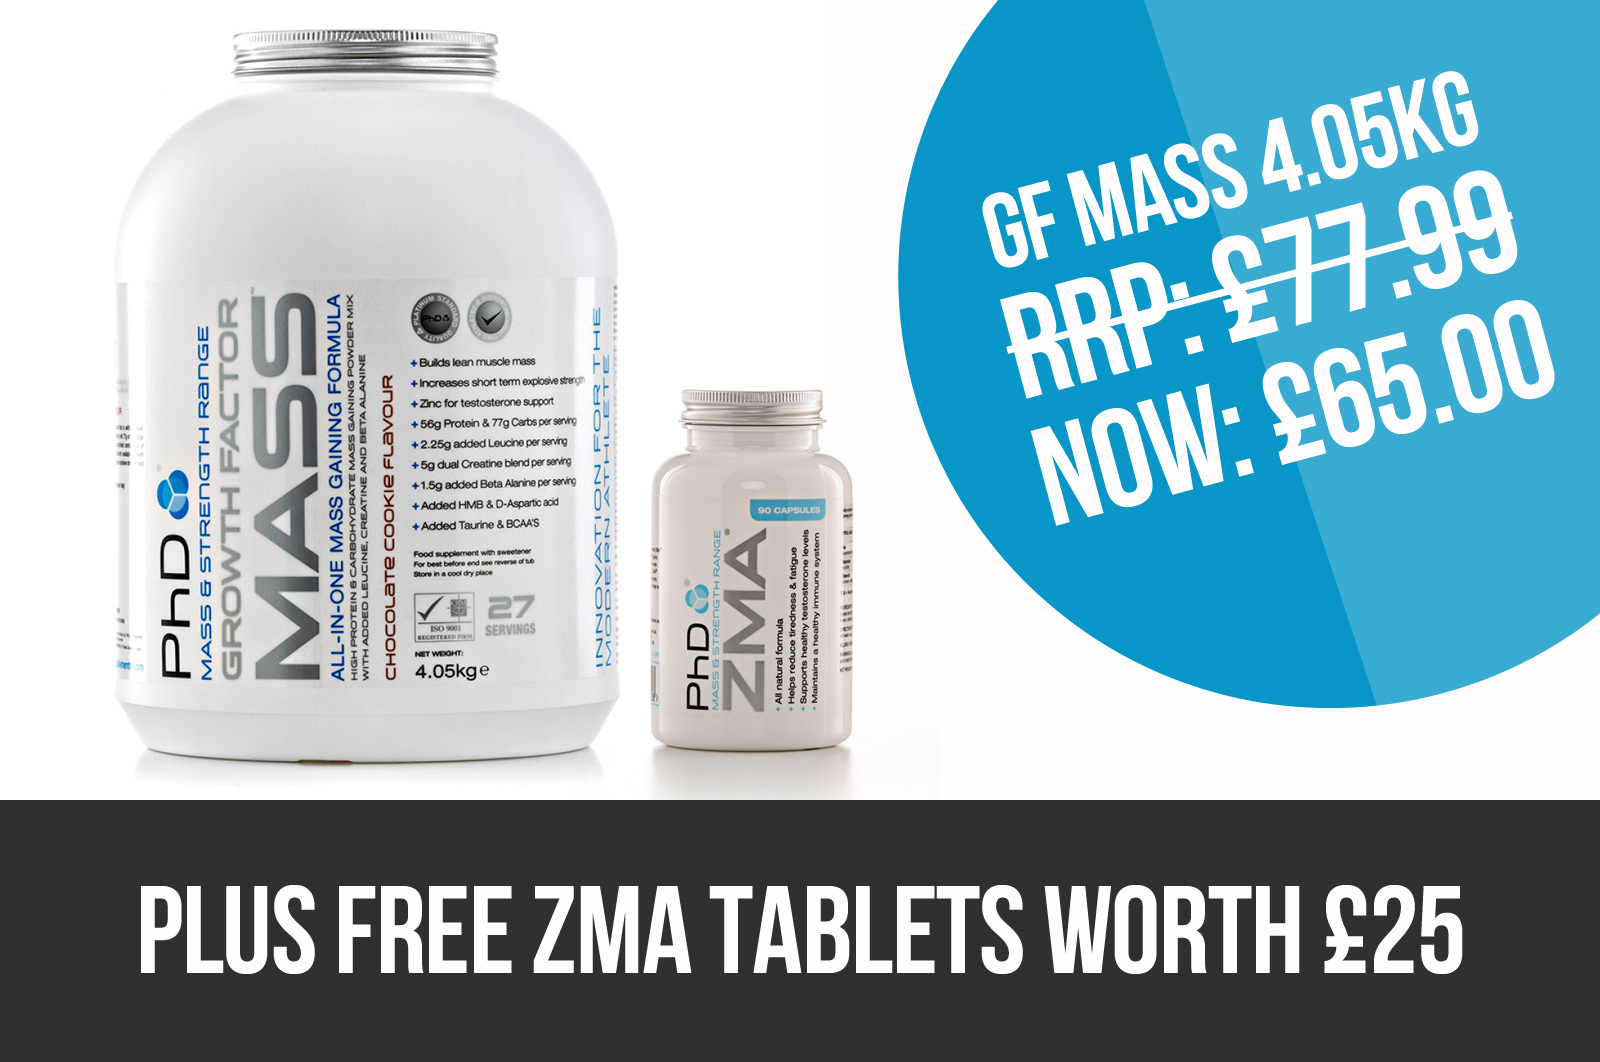 2015-12-15-Newsletter-Supp-Offers-re-ZMA